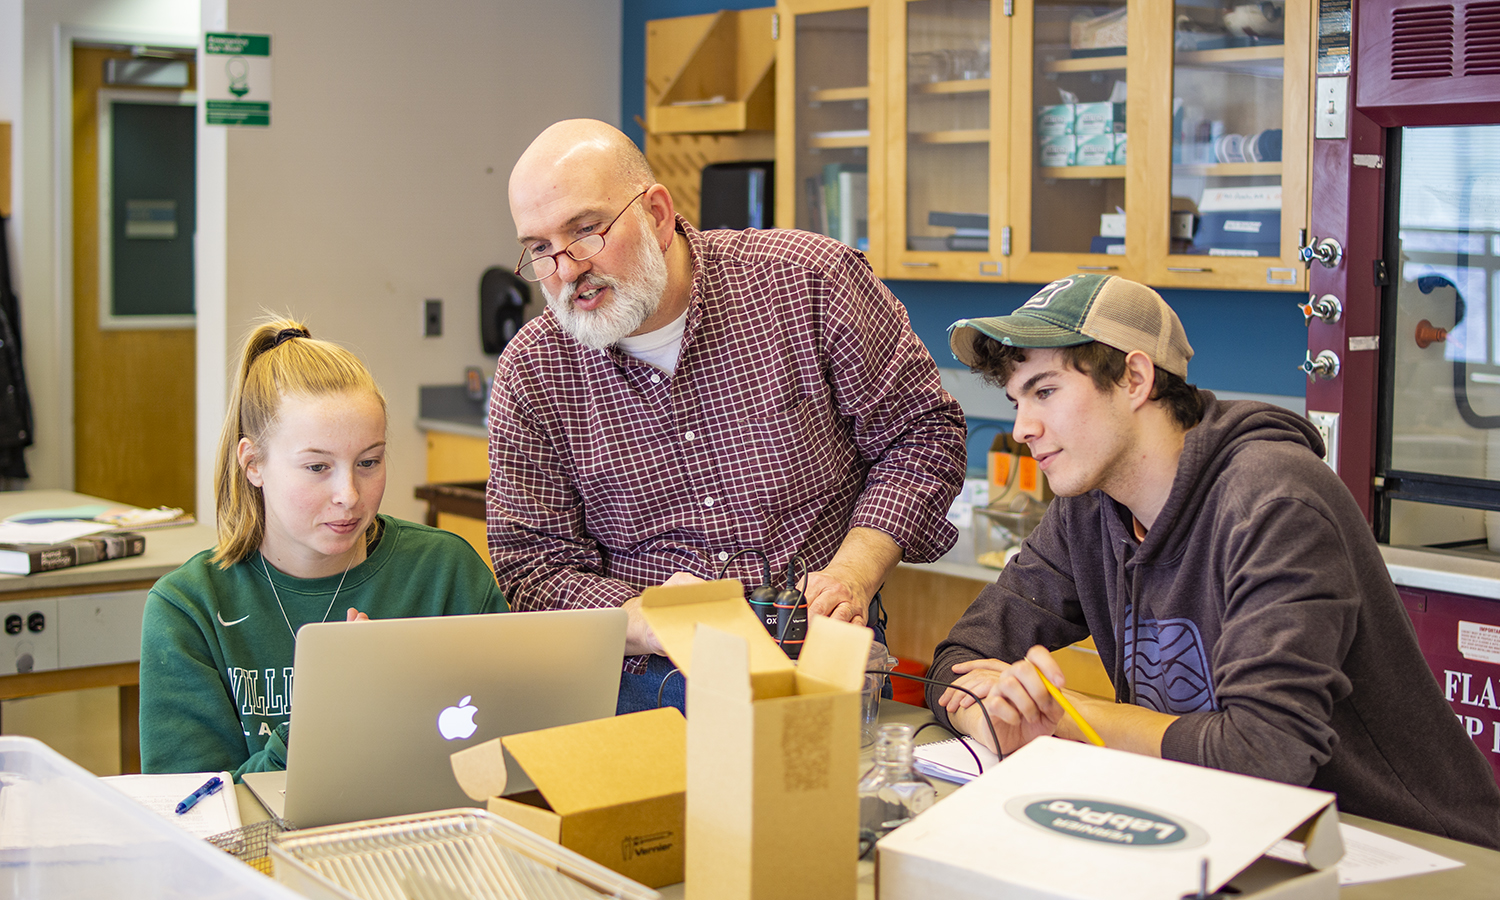 Professor of Biology Mark Deutschlander helps Eleanor Burns 'X and Colton Corriveau '21 with an assignment during a biology lab in Napier Hall.